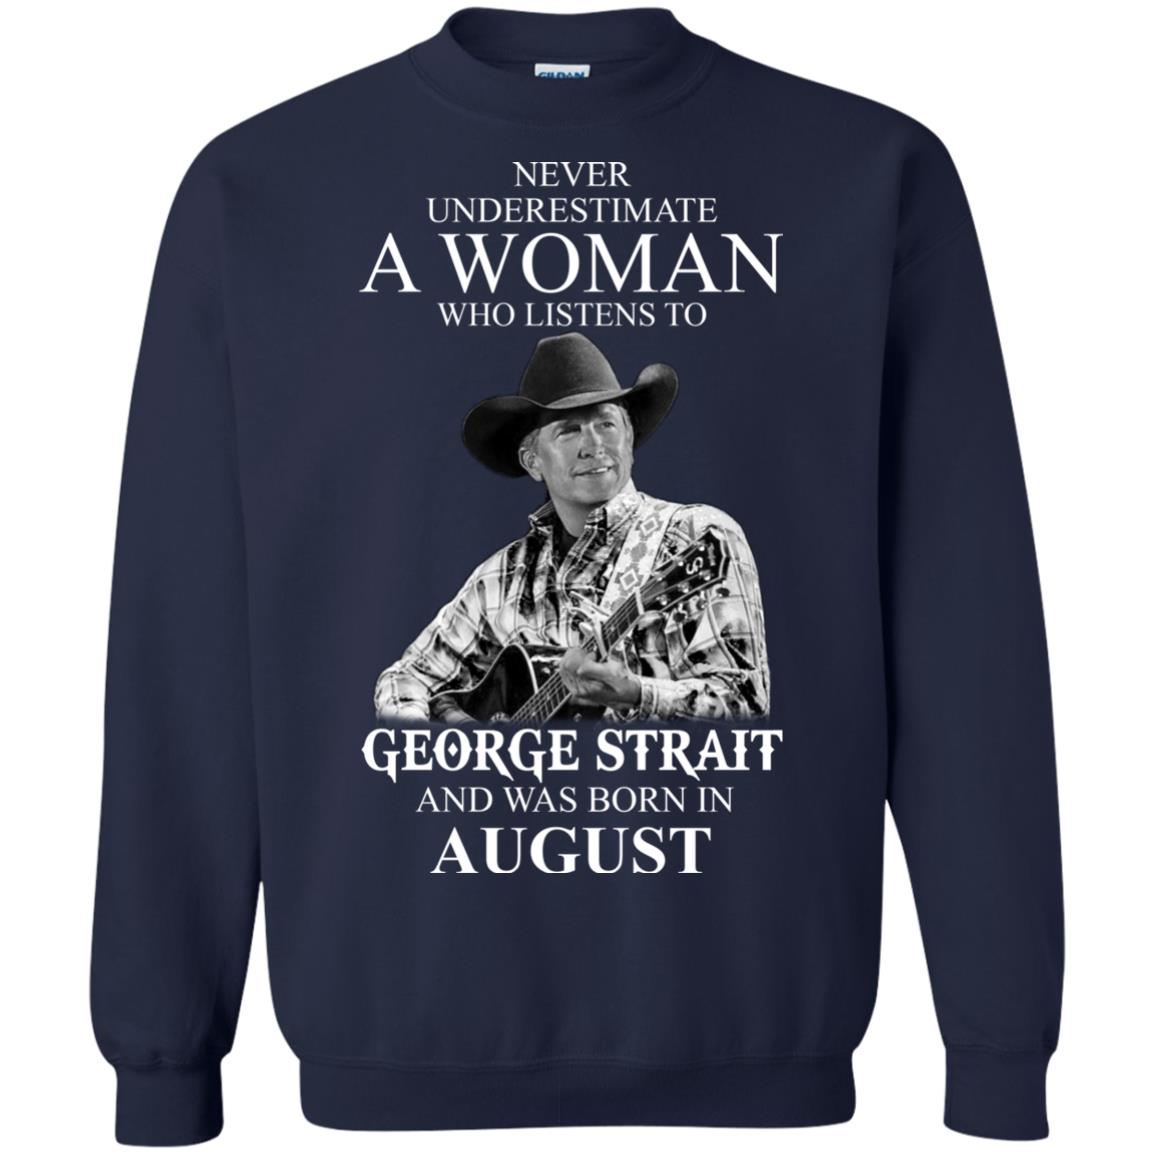 image 393 - Never Underestimate A Woman Who Listens To George Strait And Was Born In August shirt